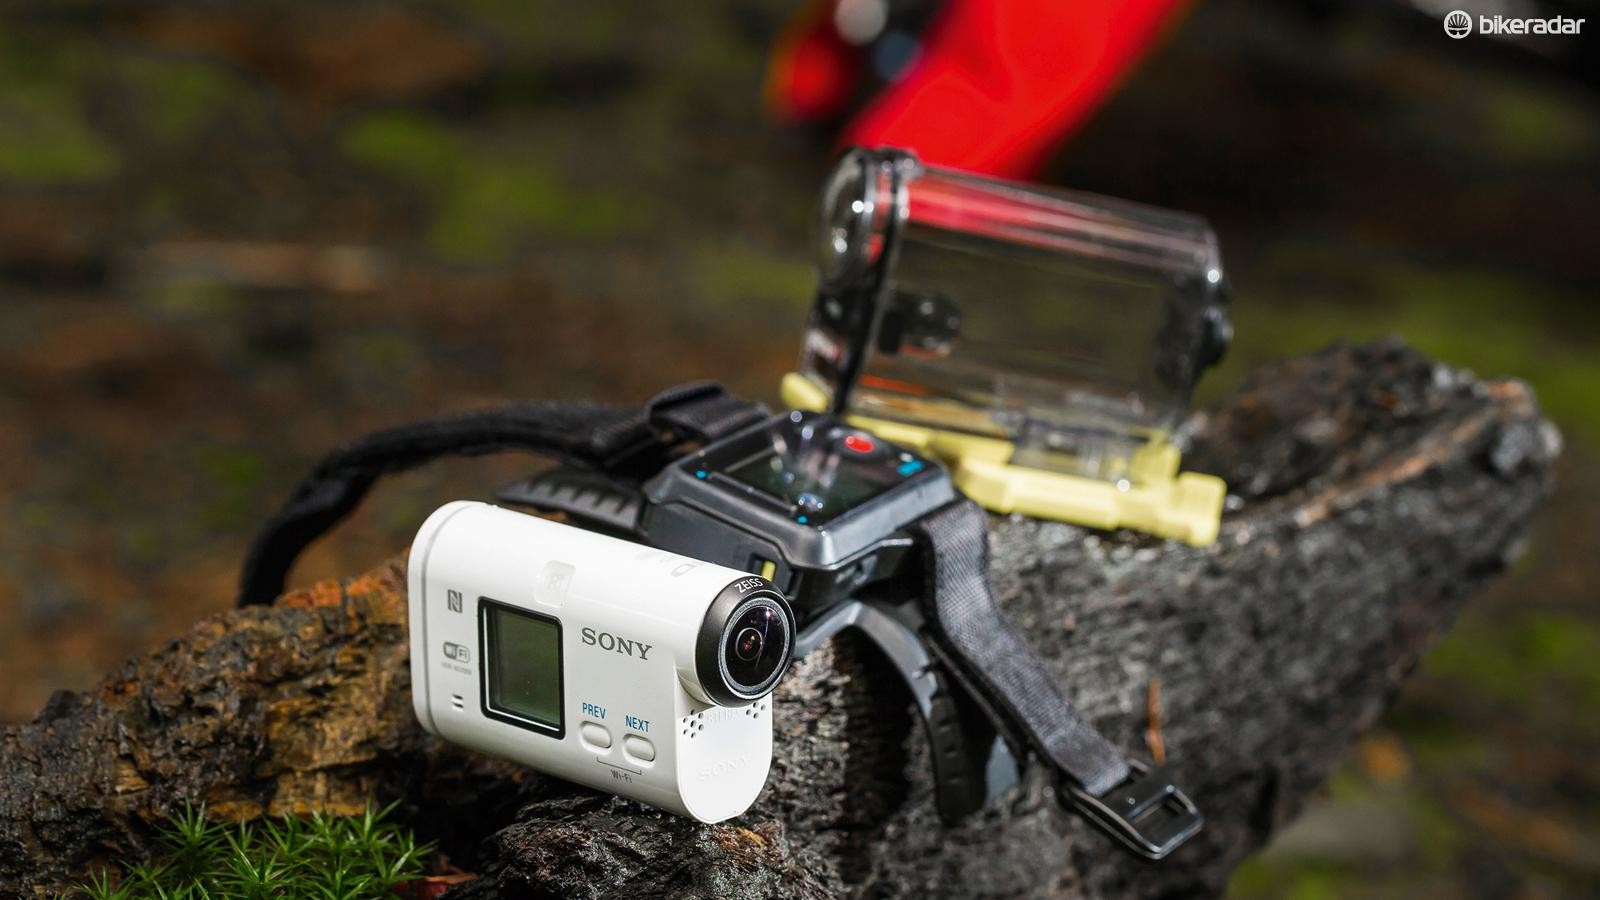 Sony HDR-AS100V action camera with live remote